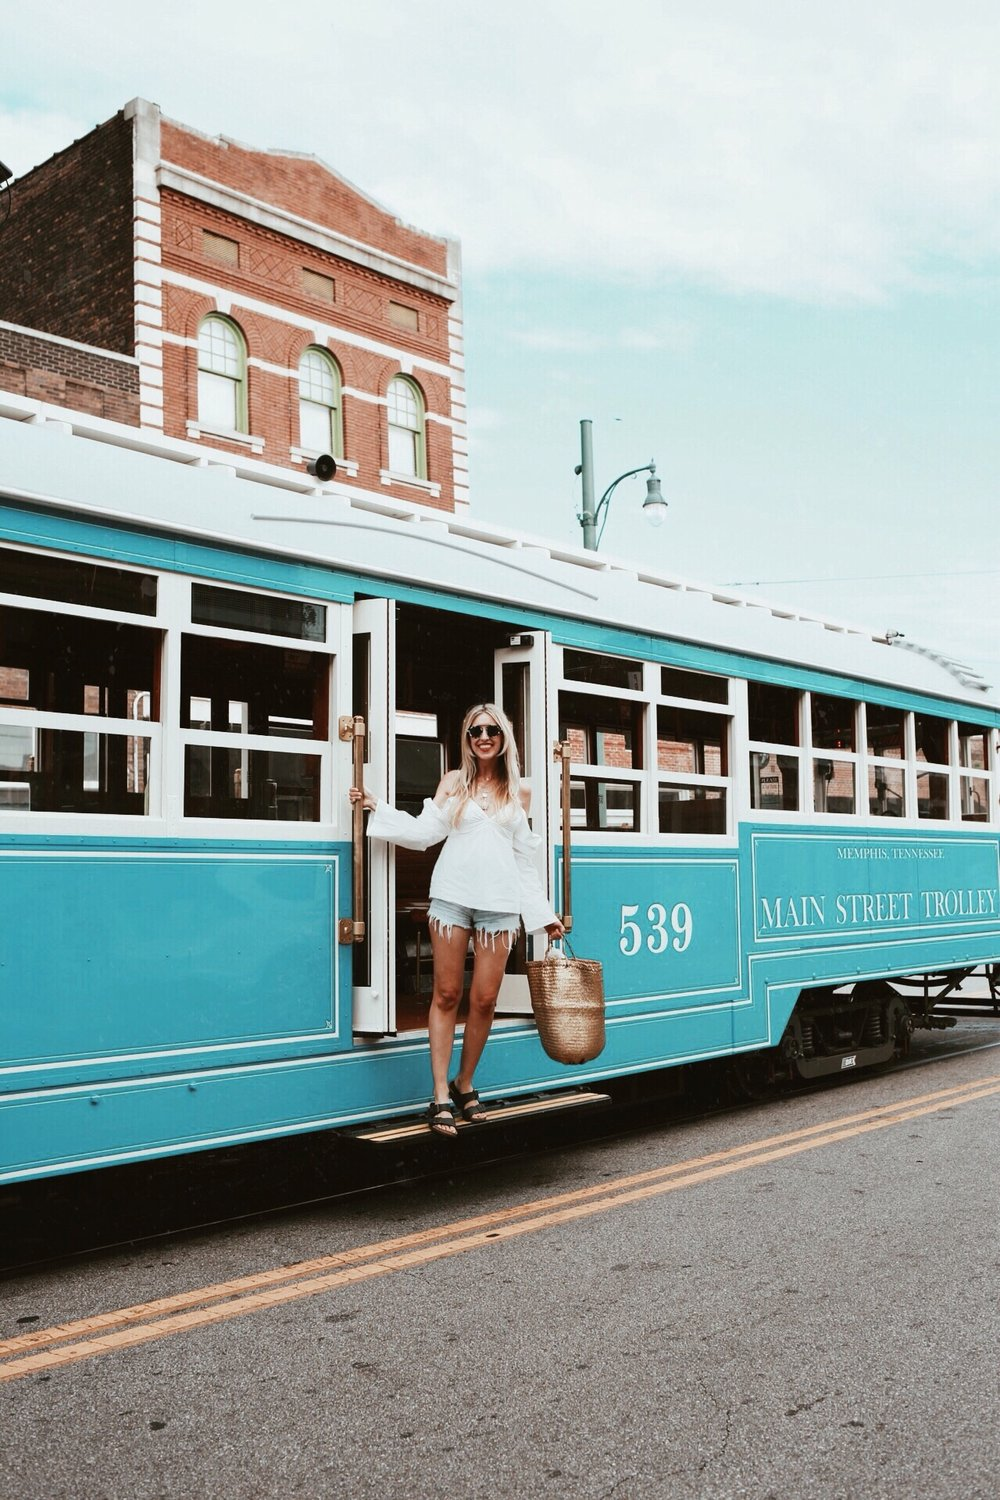 The Trolly Memphis / Oui We